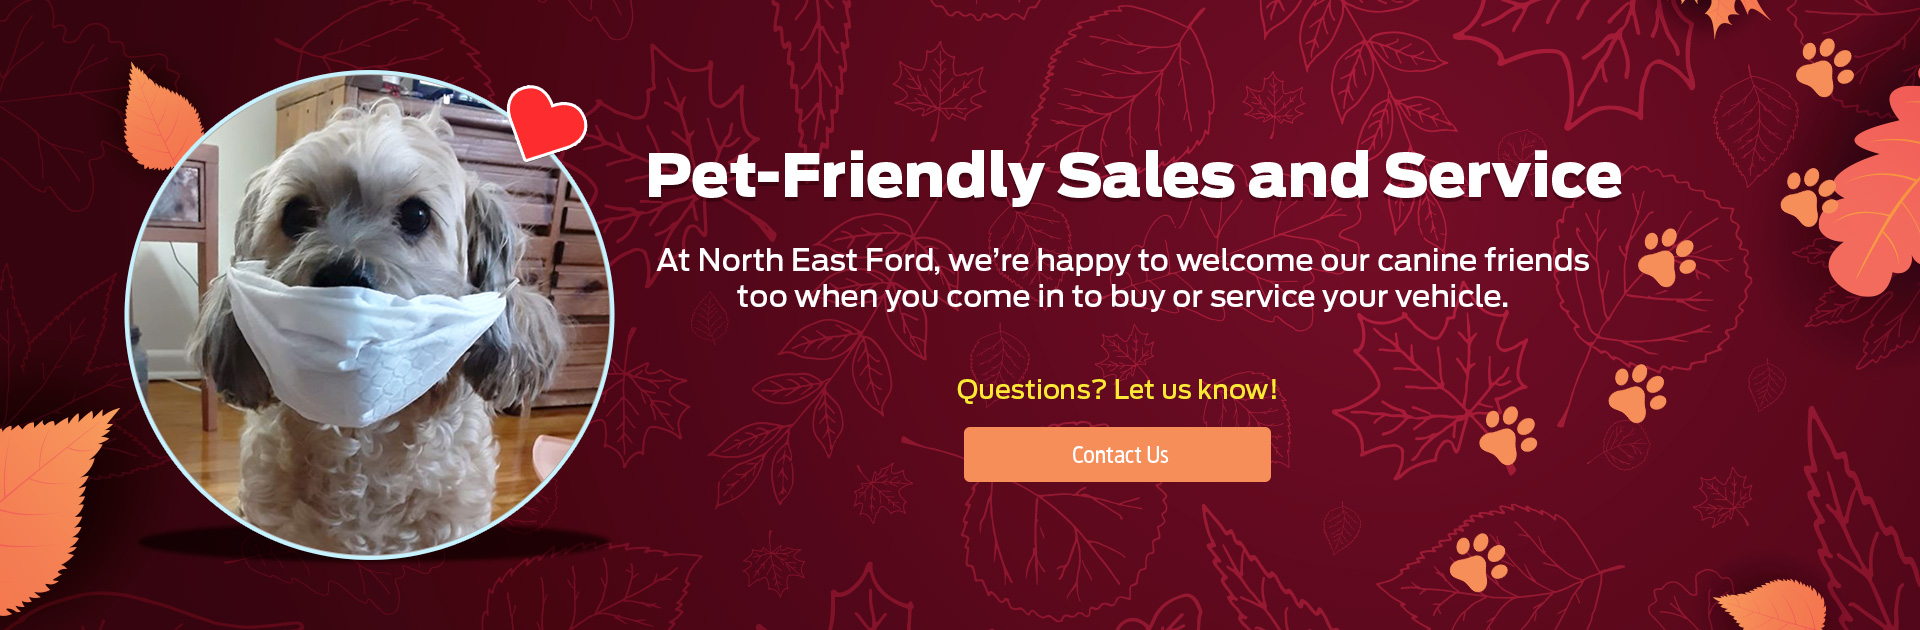 Northeast Ford Thanksgiving Pet Friendly Banner